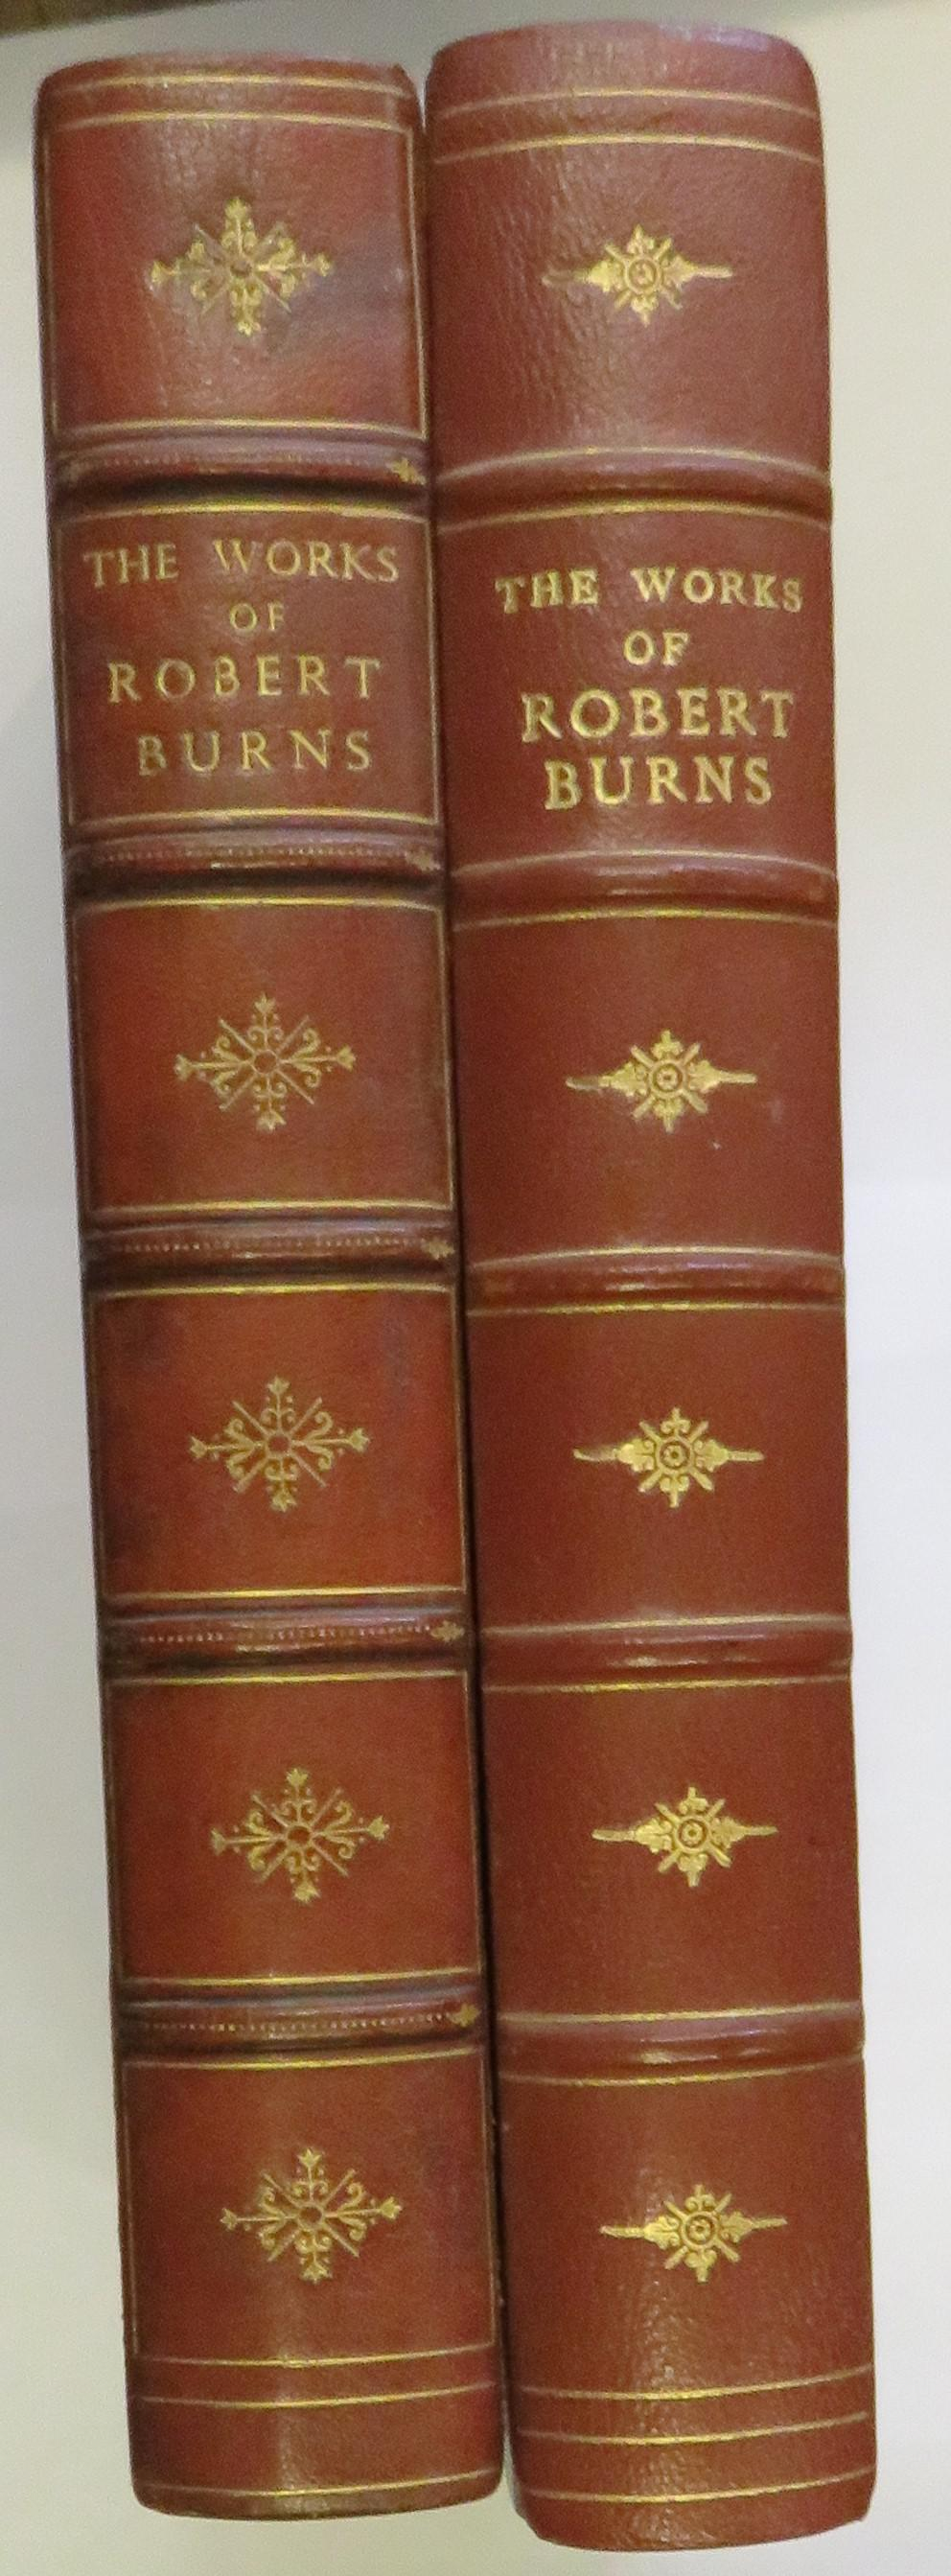 The Works of Robert Burns: Complete in Two Volumes